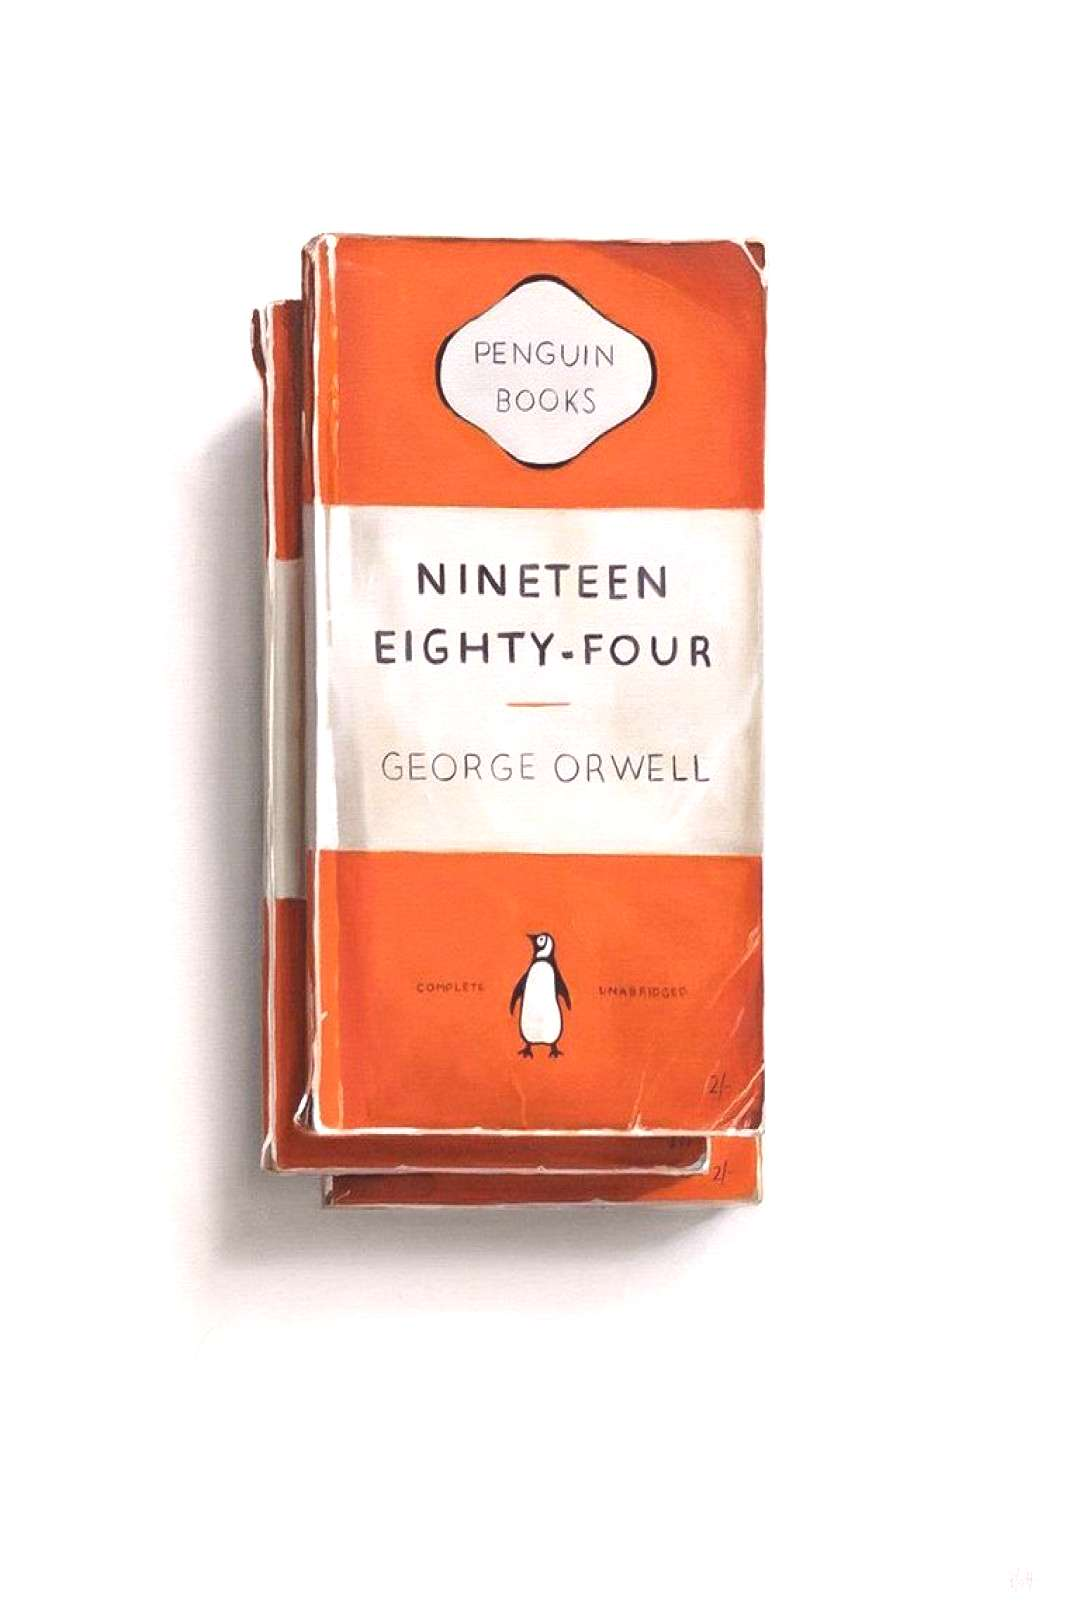 Christopher Stott, Penguin Books - Nineteen Eighty-Four